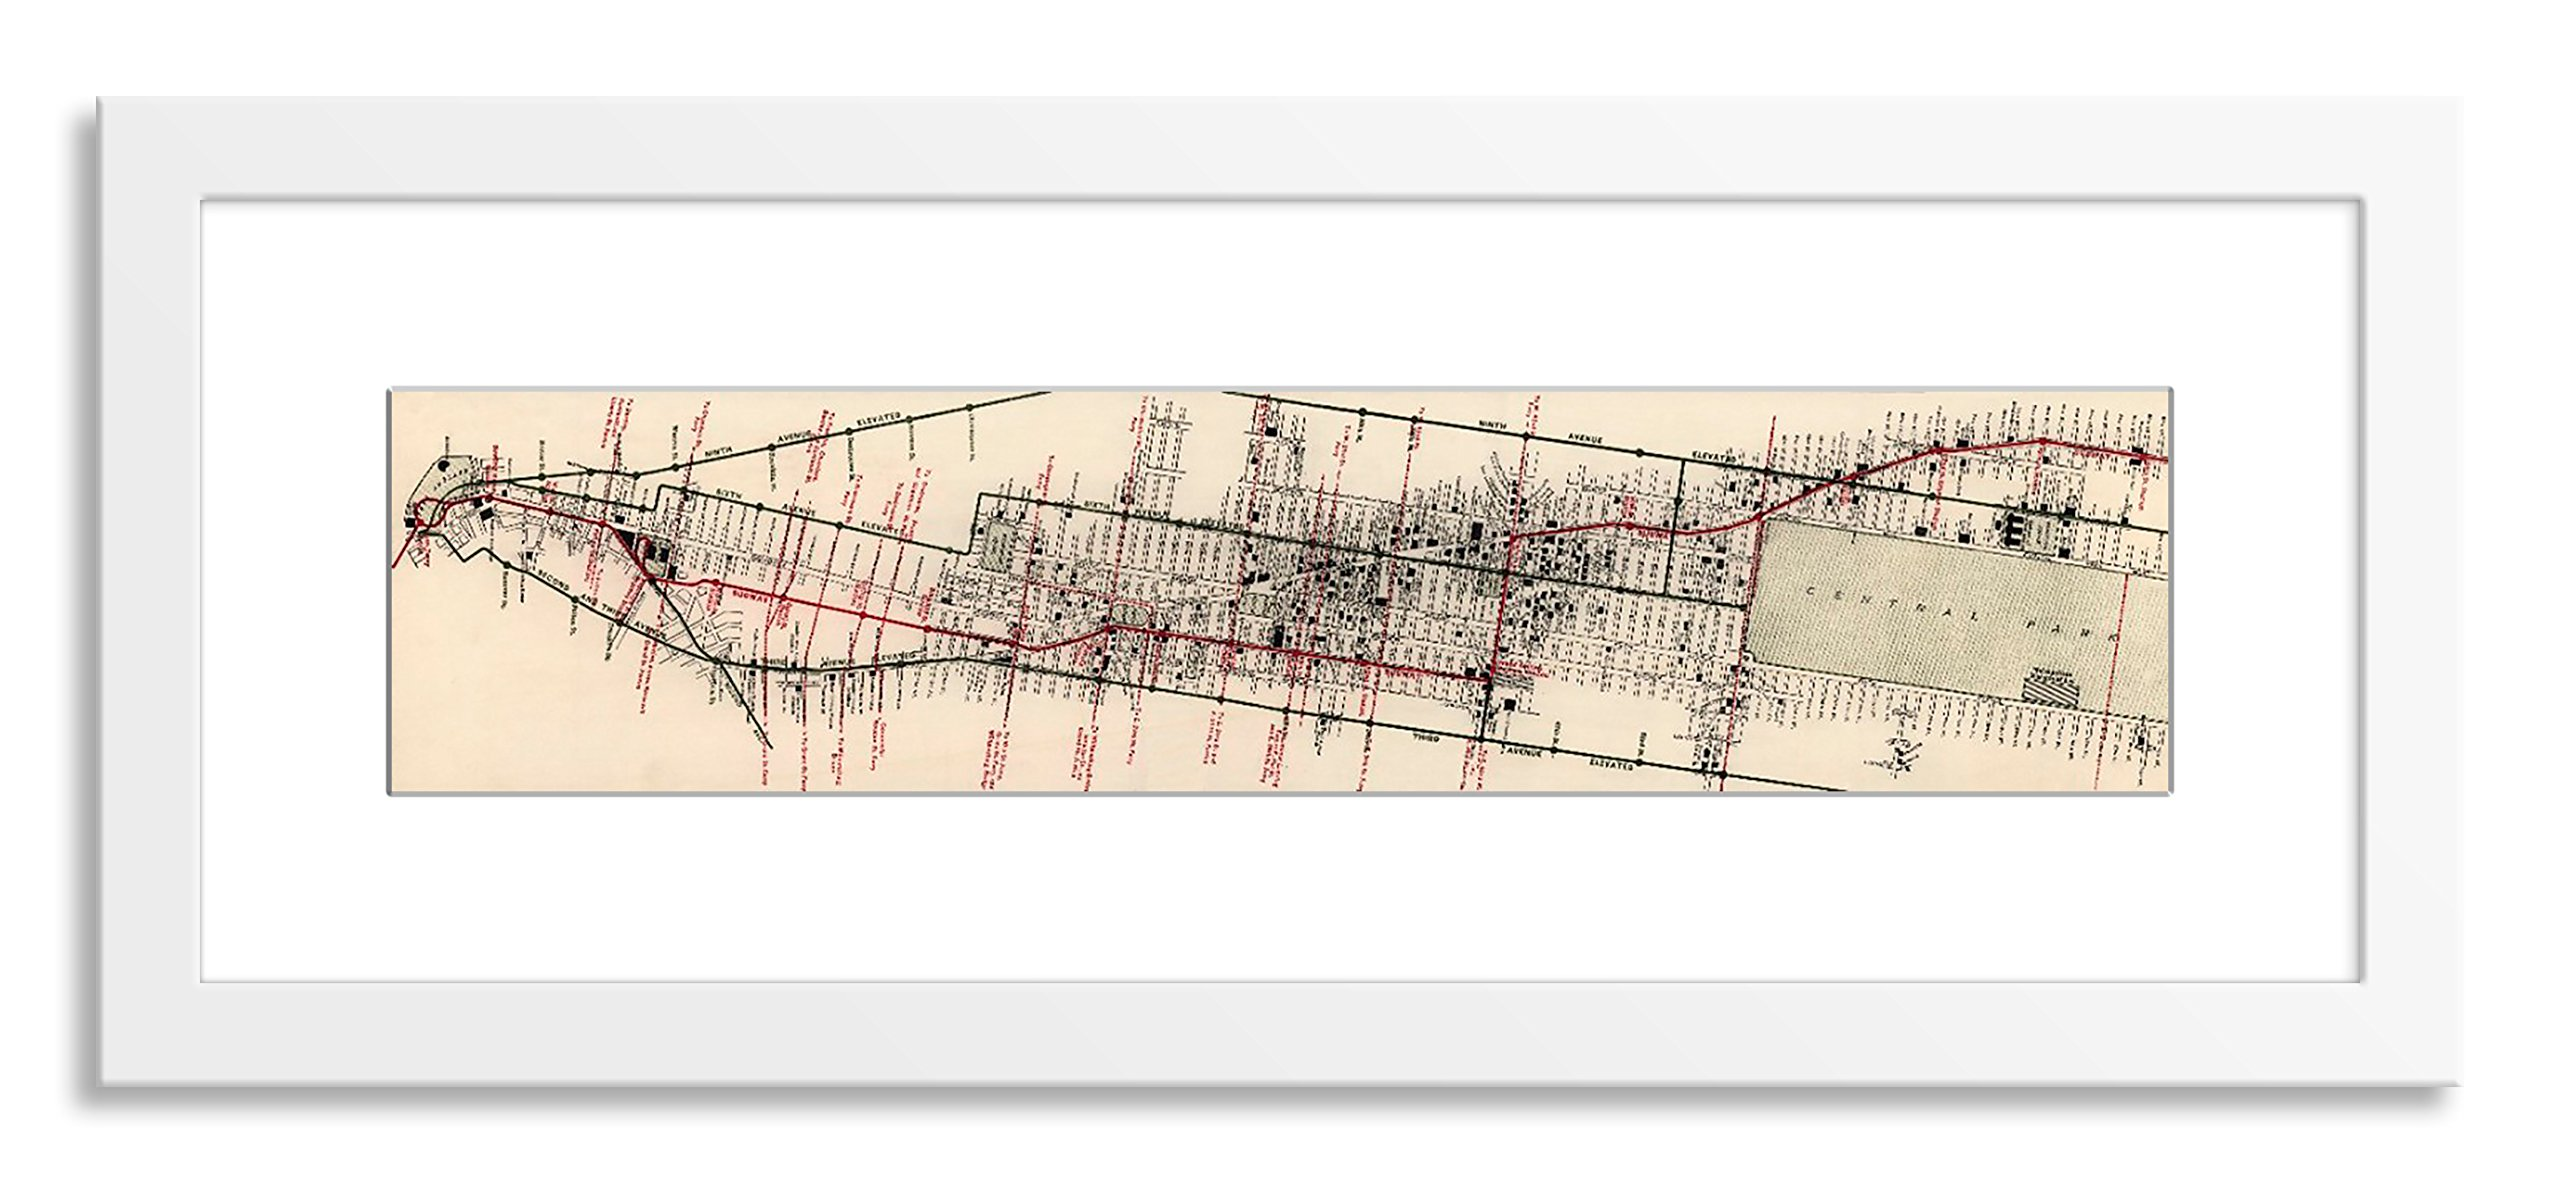 Gallery Direct V03990-7x35-PF-F0175-ML002 Map of New York Hotels and Theatres by the Merchants' Association Artwork on Paper with White, Clean and Simple Frame, 45'' x 17''